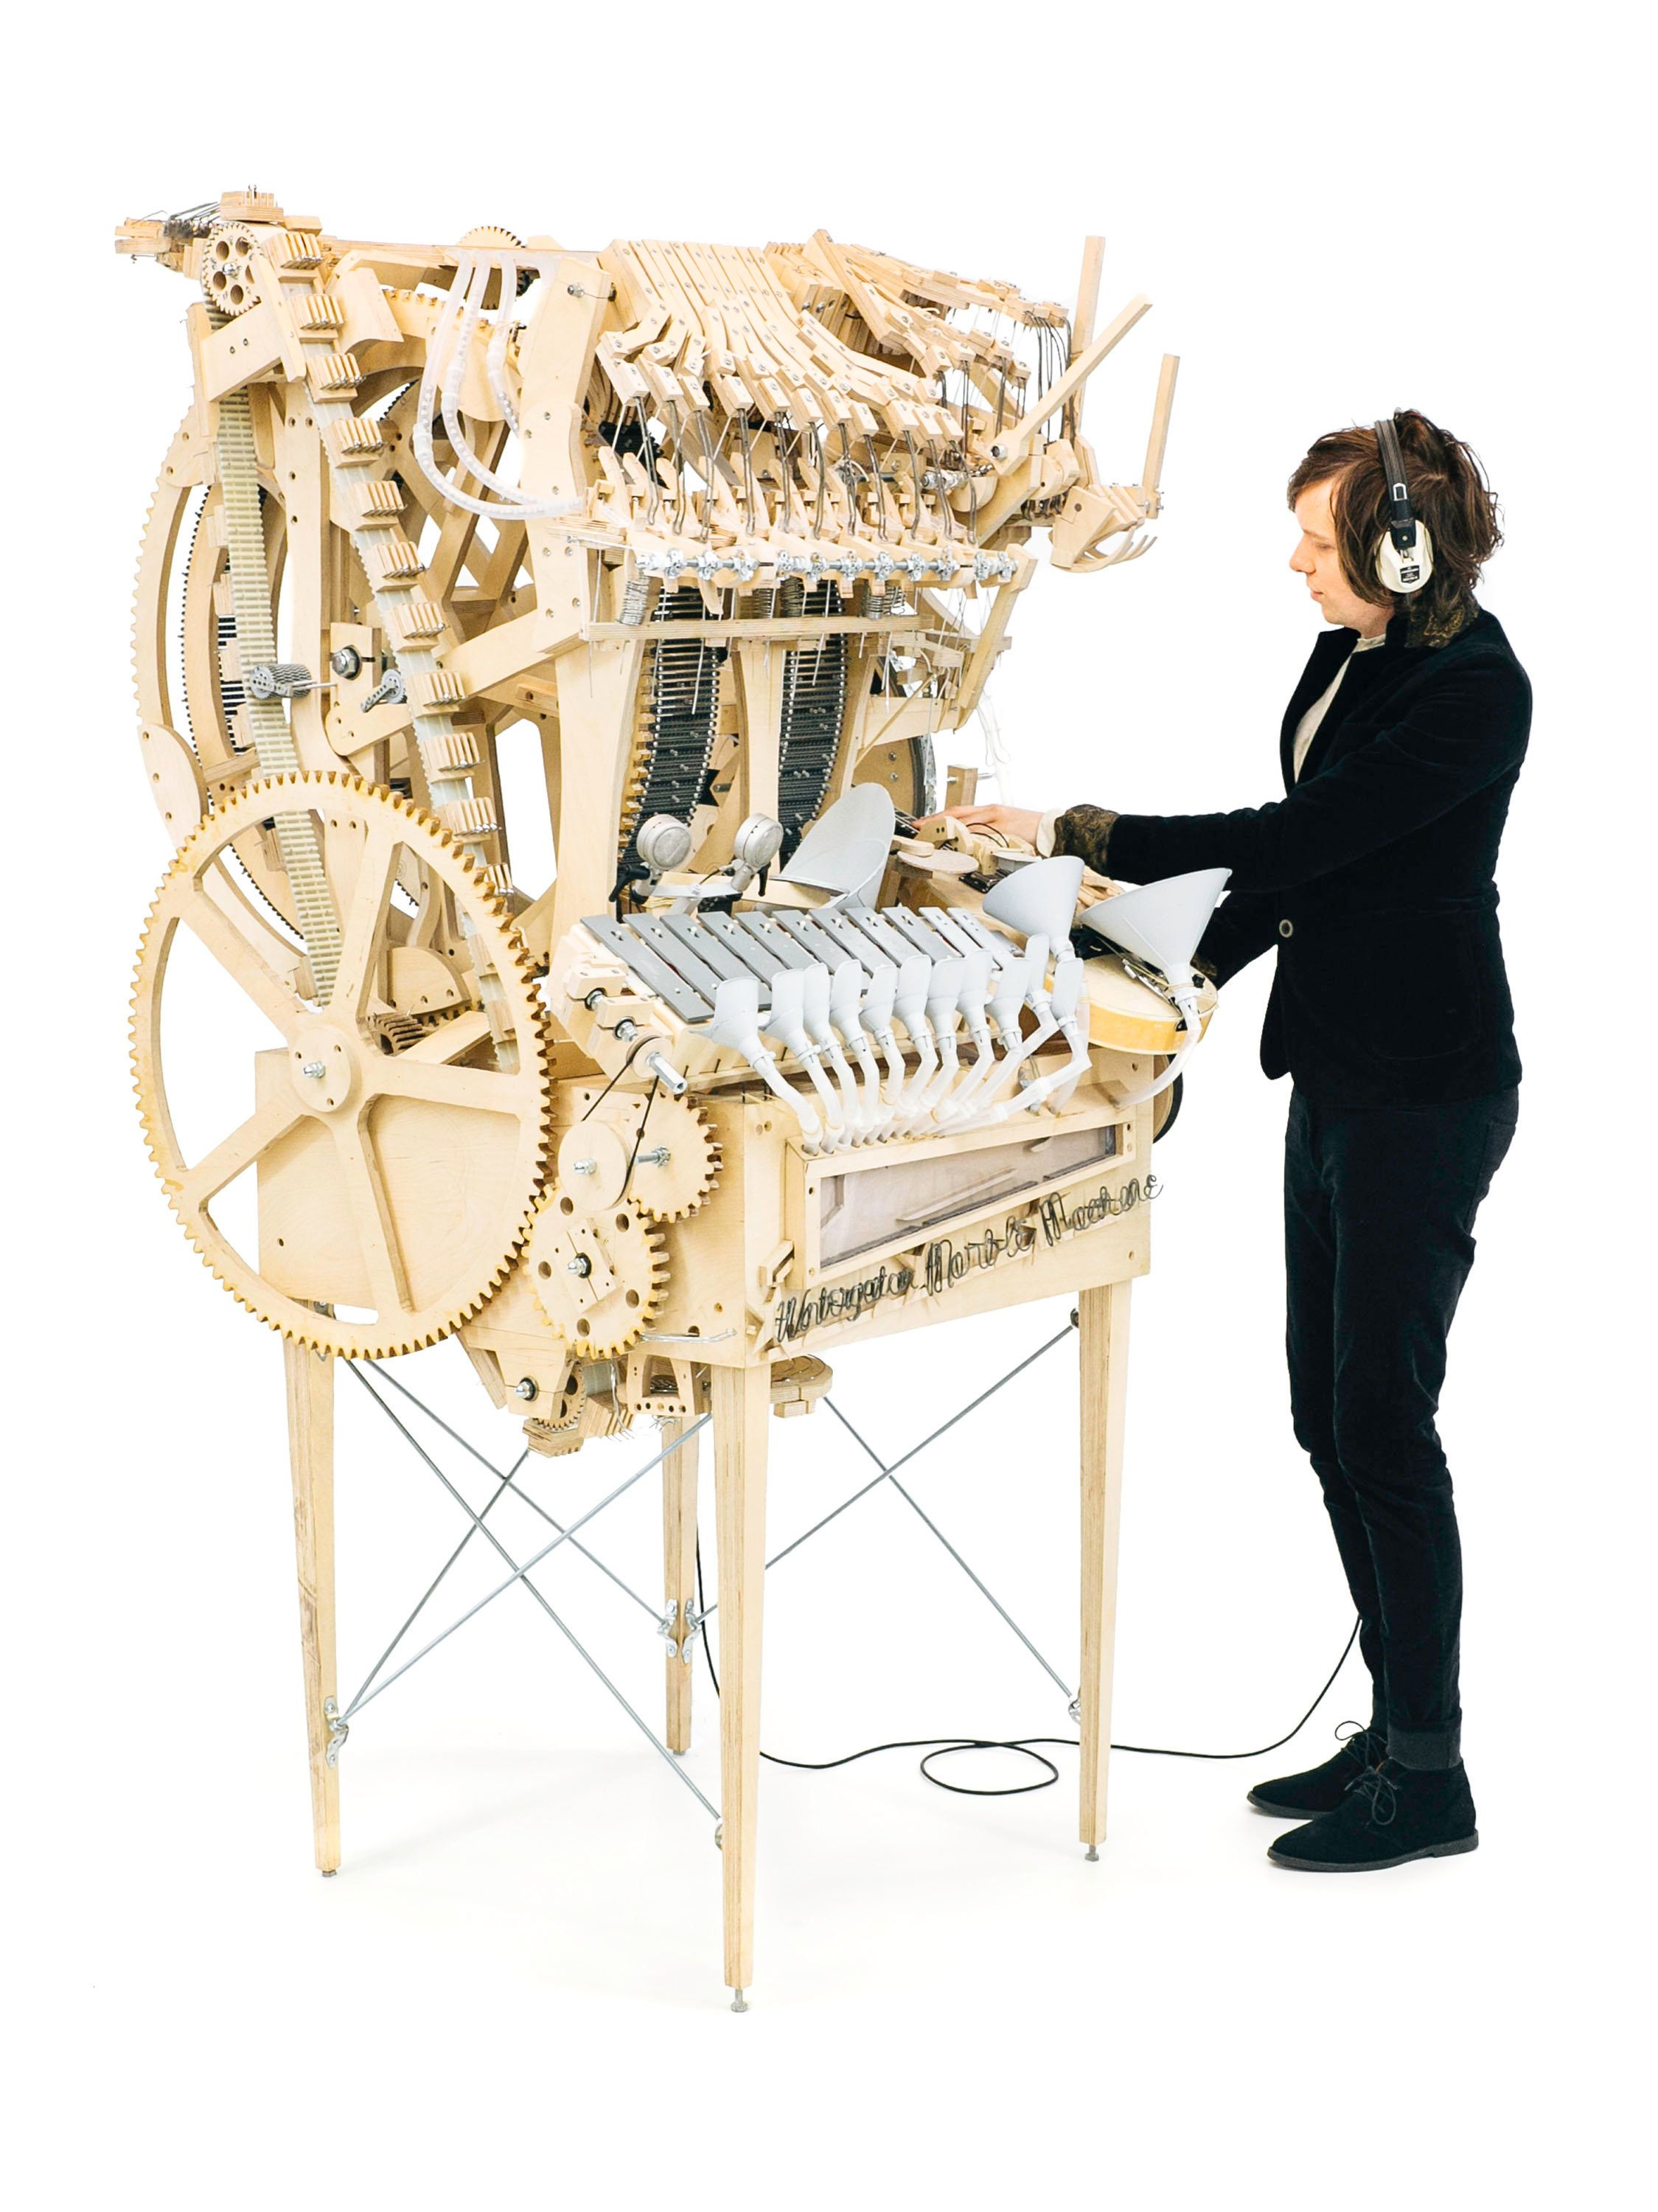 German musician Martin Molin spent a year on a machine that turns marbles into musical instruments.